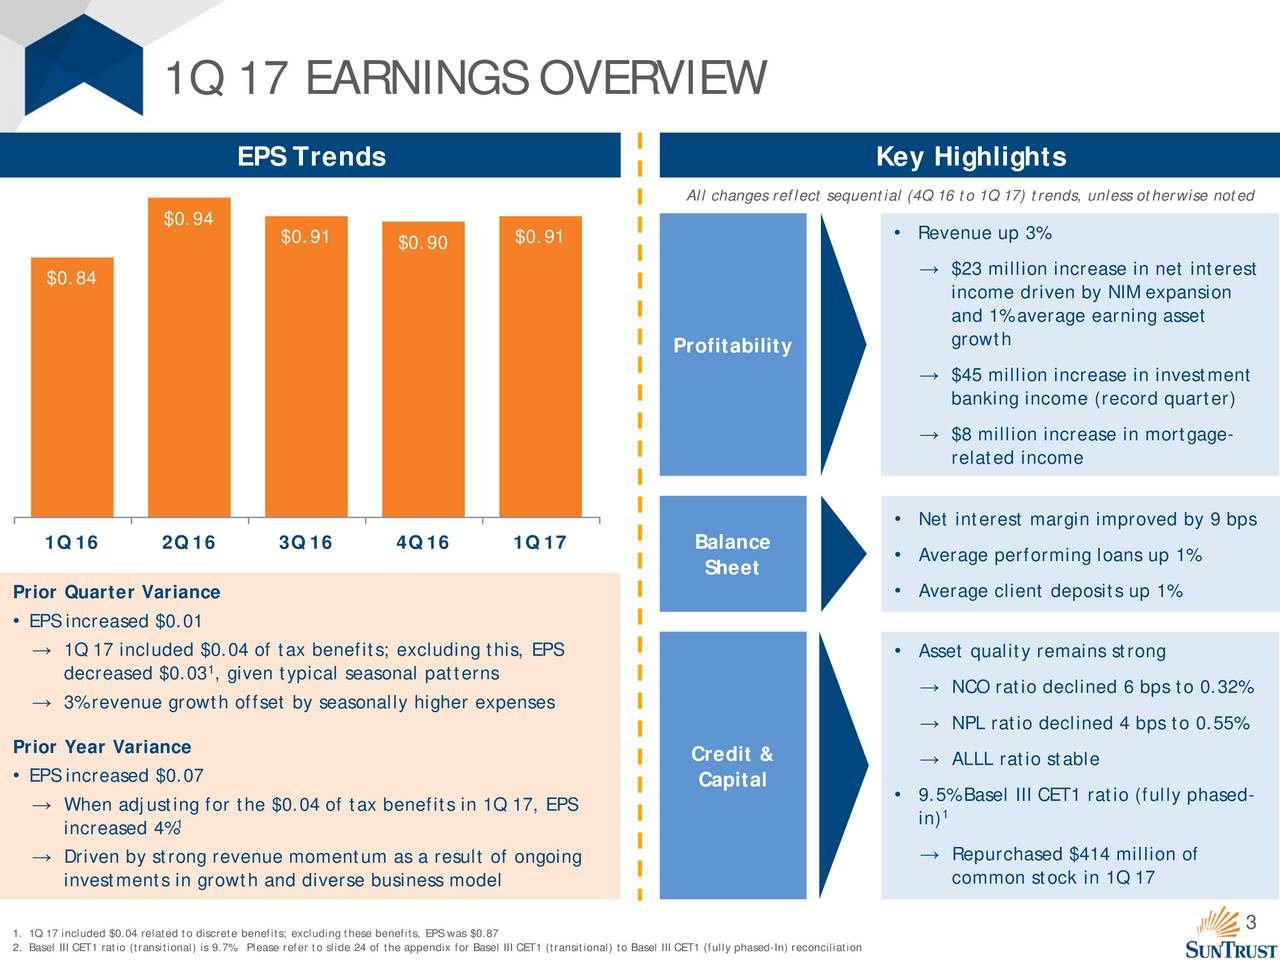 EPS Trends Key Highlights All changes reflect sequential (4Q 16 to 1Q 17) trends, unless otherwise noted $0.94 $0.91 $0.90 $0.91  Revenue up 3% $0.84  $23 million increase in net interest income driven by NIM expansion and 1% average earning asset growth Profitability $45 million increase in investment banking income (record quarter) $8 million increase in mortgage- related income Net interest margin improved by 9 bps 1Q 16 2Q 16 3Q 16 4Q 16 1Q 17 Balance Average performing loans up 1% Sheet Prior Quarter Variance  Average client deposits up 1% EPS increased $0.01 1Q 17 included $0.04 of tax benefits;excluding this, EPS  Asset quality remains strong decreased $0.03 1, given typical seasonal patterns 3% revenue growth offset by seasonally higher expenses  NCO ratio declined 6 bps to 0.32% NPL ratio declined 4 bps to 0.55% Prior Year Variance Credit &  ALLL ratio stable EPS increased $0.07 Capital 9.5% Basel III CET1 ratio (fully phased- When adjustin1 for the $0.04 of tax benefits in 1Q 17, EPS in) increased 4% Driven by strong revenue momentum as a result of ongoing  Repurchased $414 million of investments in growth and diverse business model common stock in 1Q 17 3 1. 1Q 17 included $0.04 related to discrete benefits; excluding these benefits, EPS was $0.87